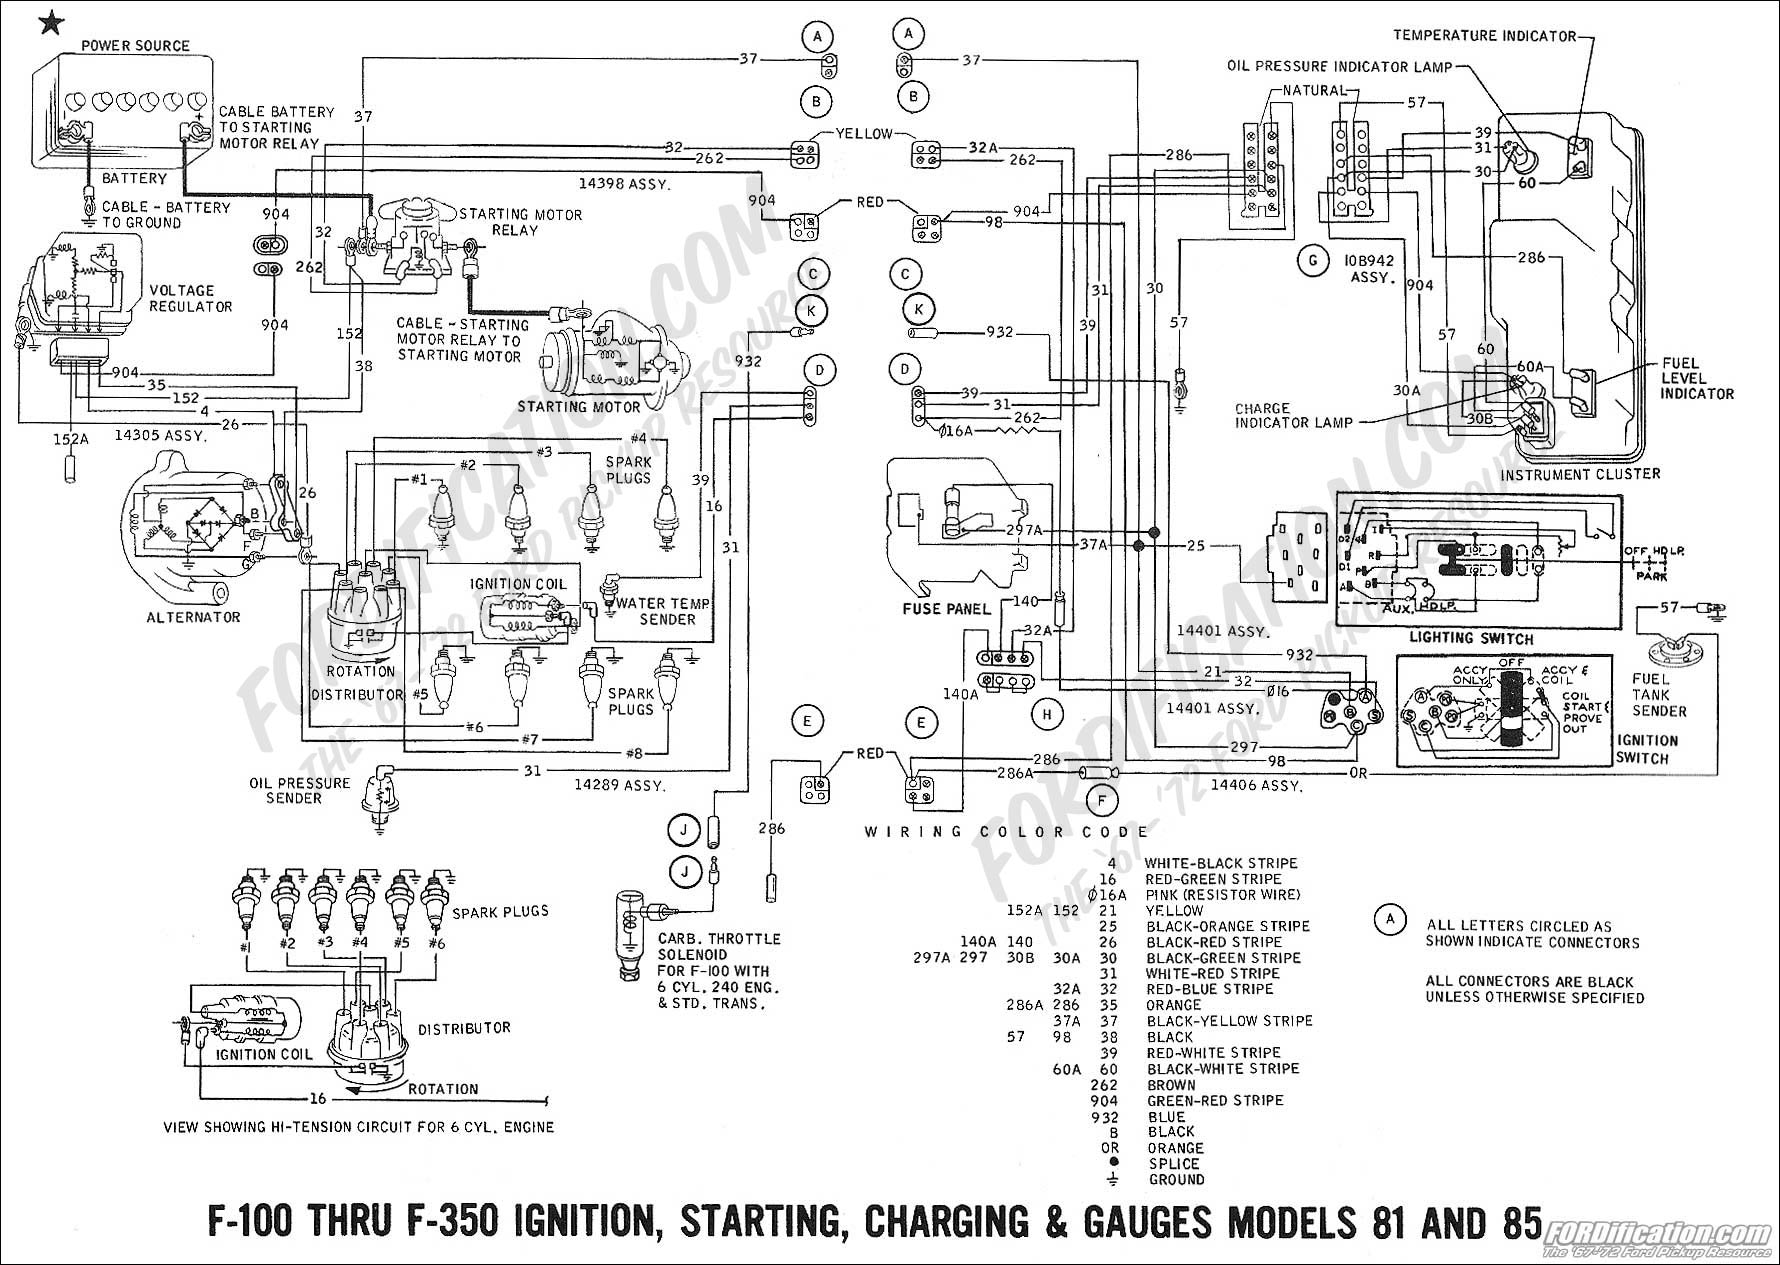 1985 ford f 250 diesel 4x4 wiring diagram content resource of 1985 ford  f-250